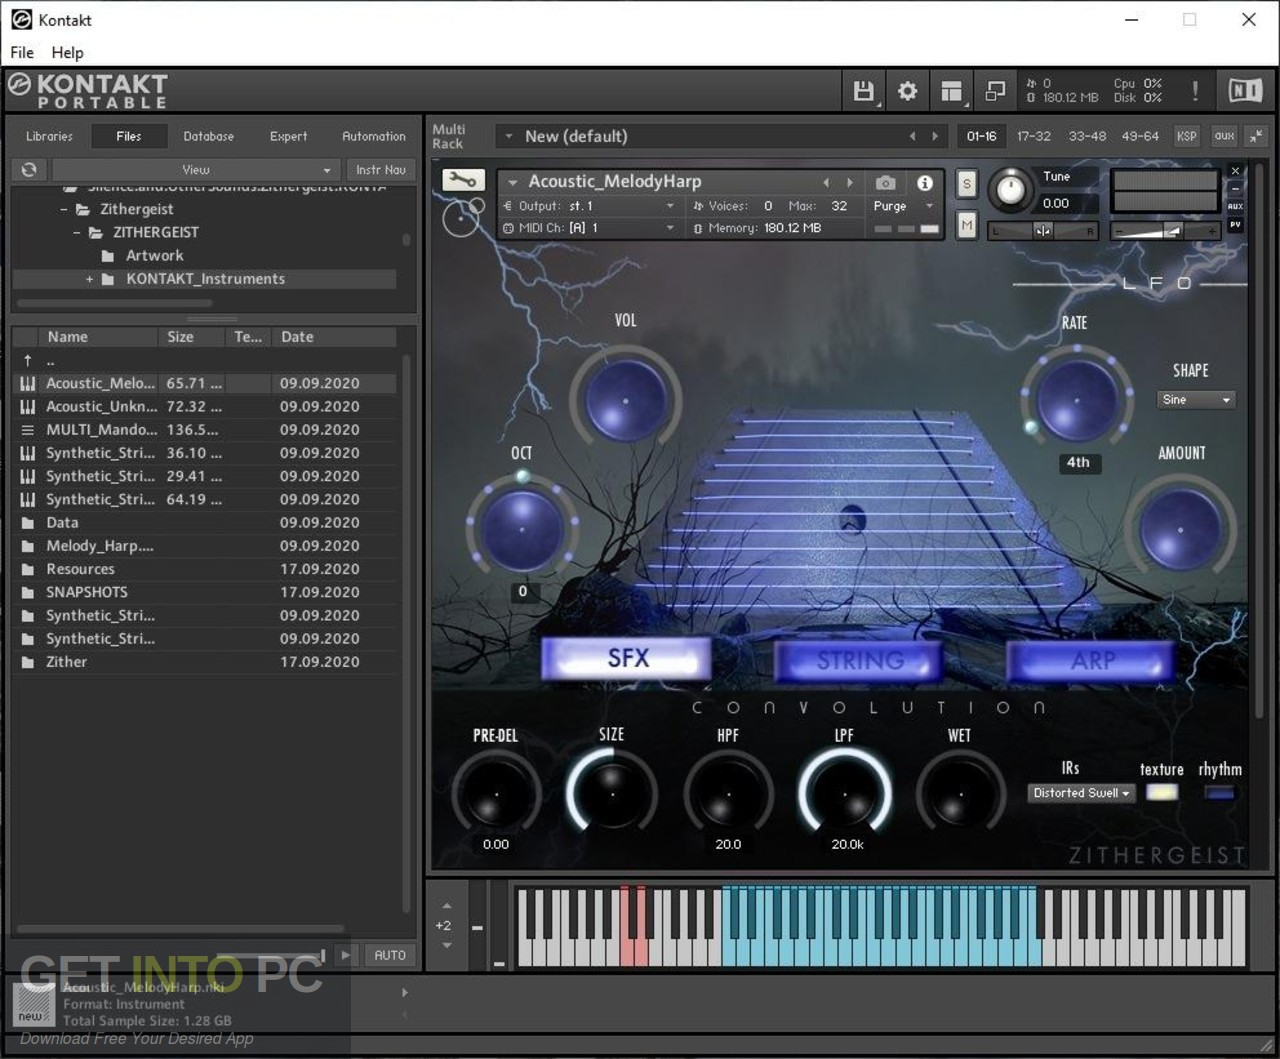 Silence + Other Sounds - Zithergeist (KONTAKT) Direct Link Download